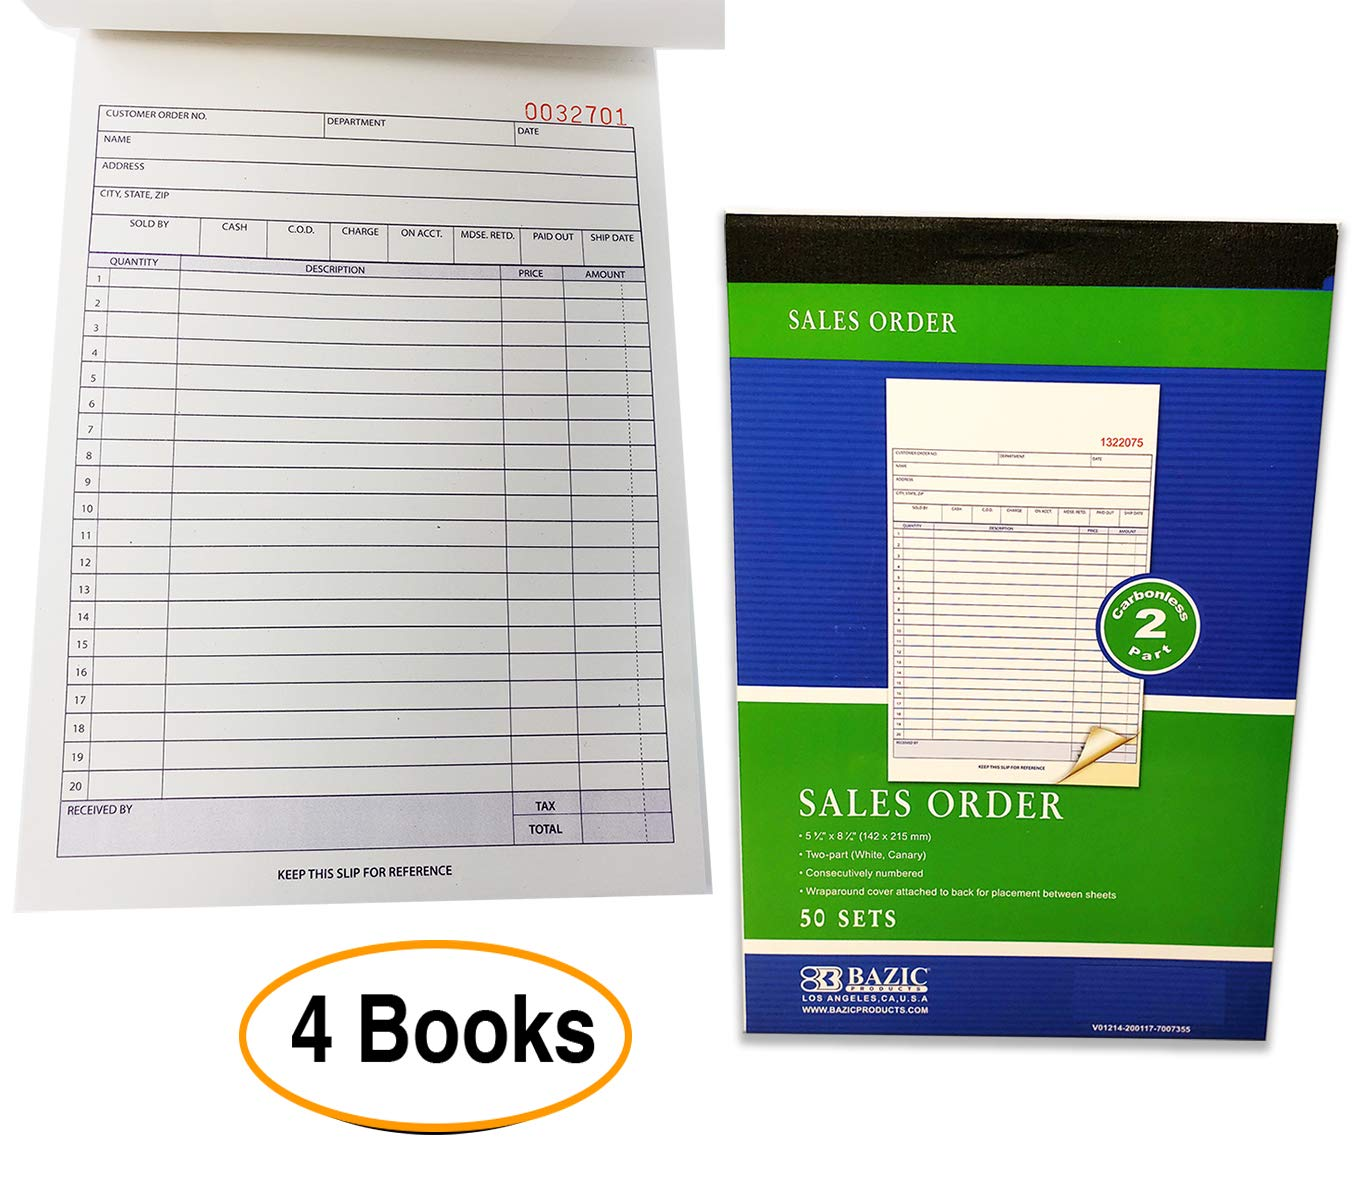 Sales Order Books Invoices | Receipts, 2-Part, Carbonless, White/Canary, 8.5 x 5.5 Inches, 50 Sets per Book, 4 Books 4 seasons